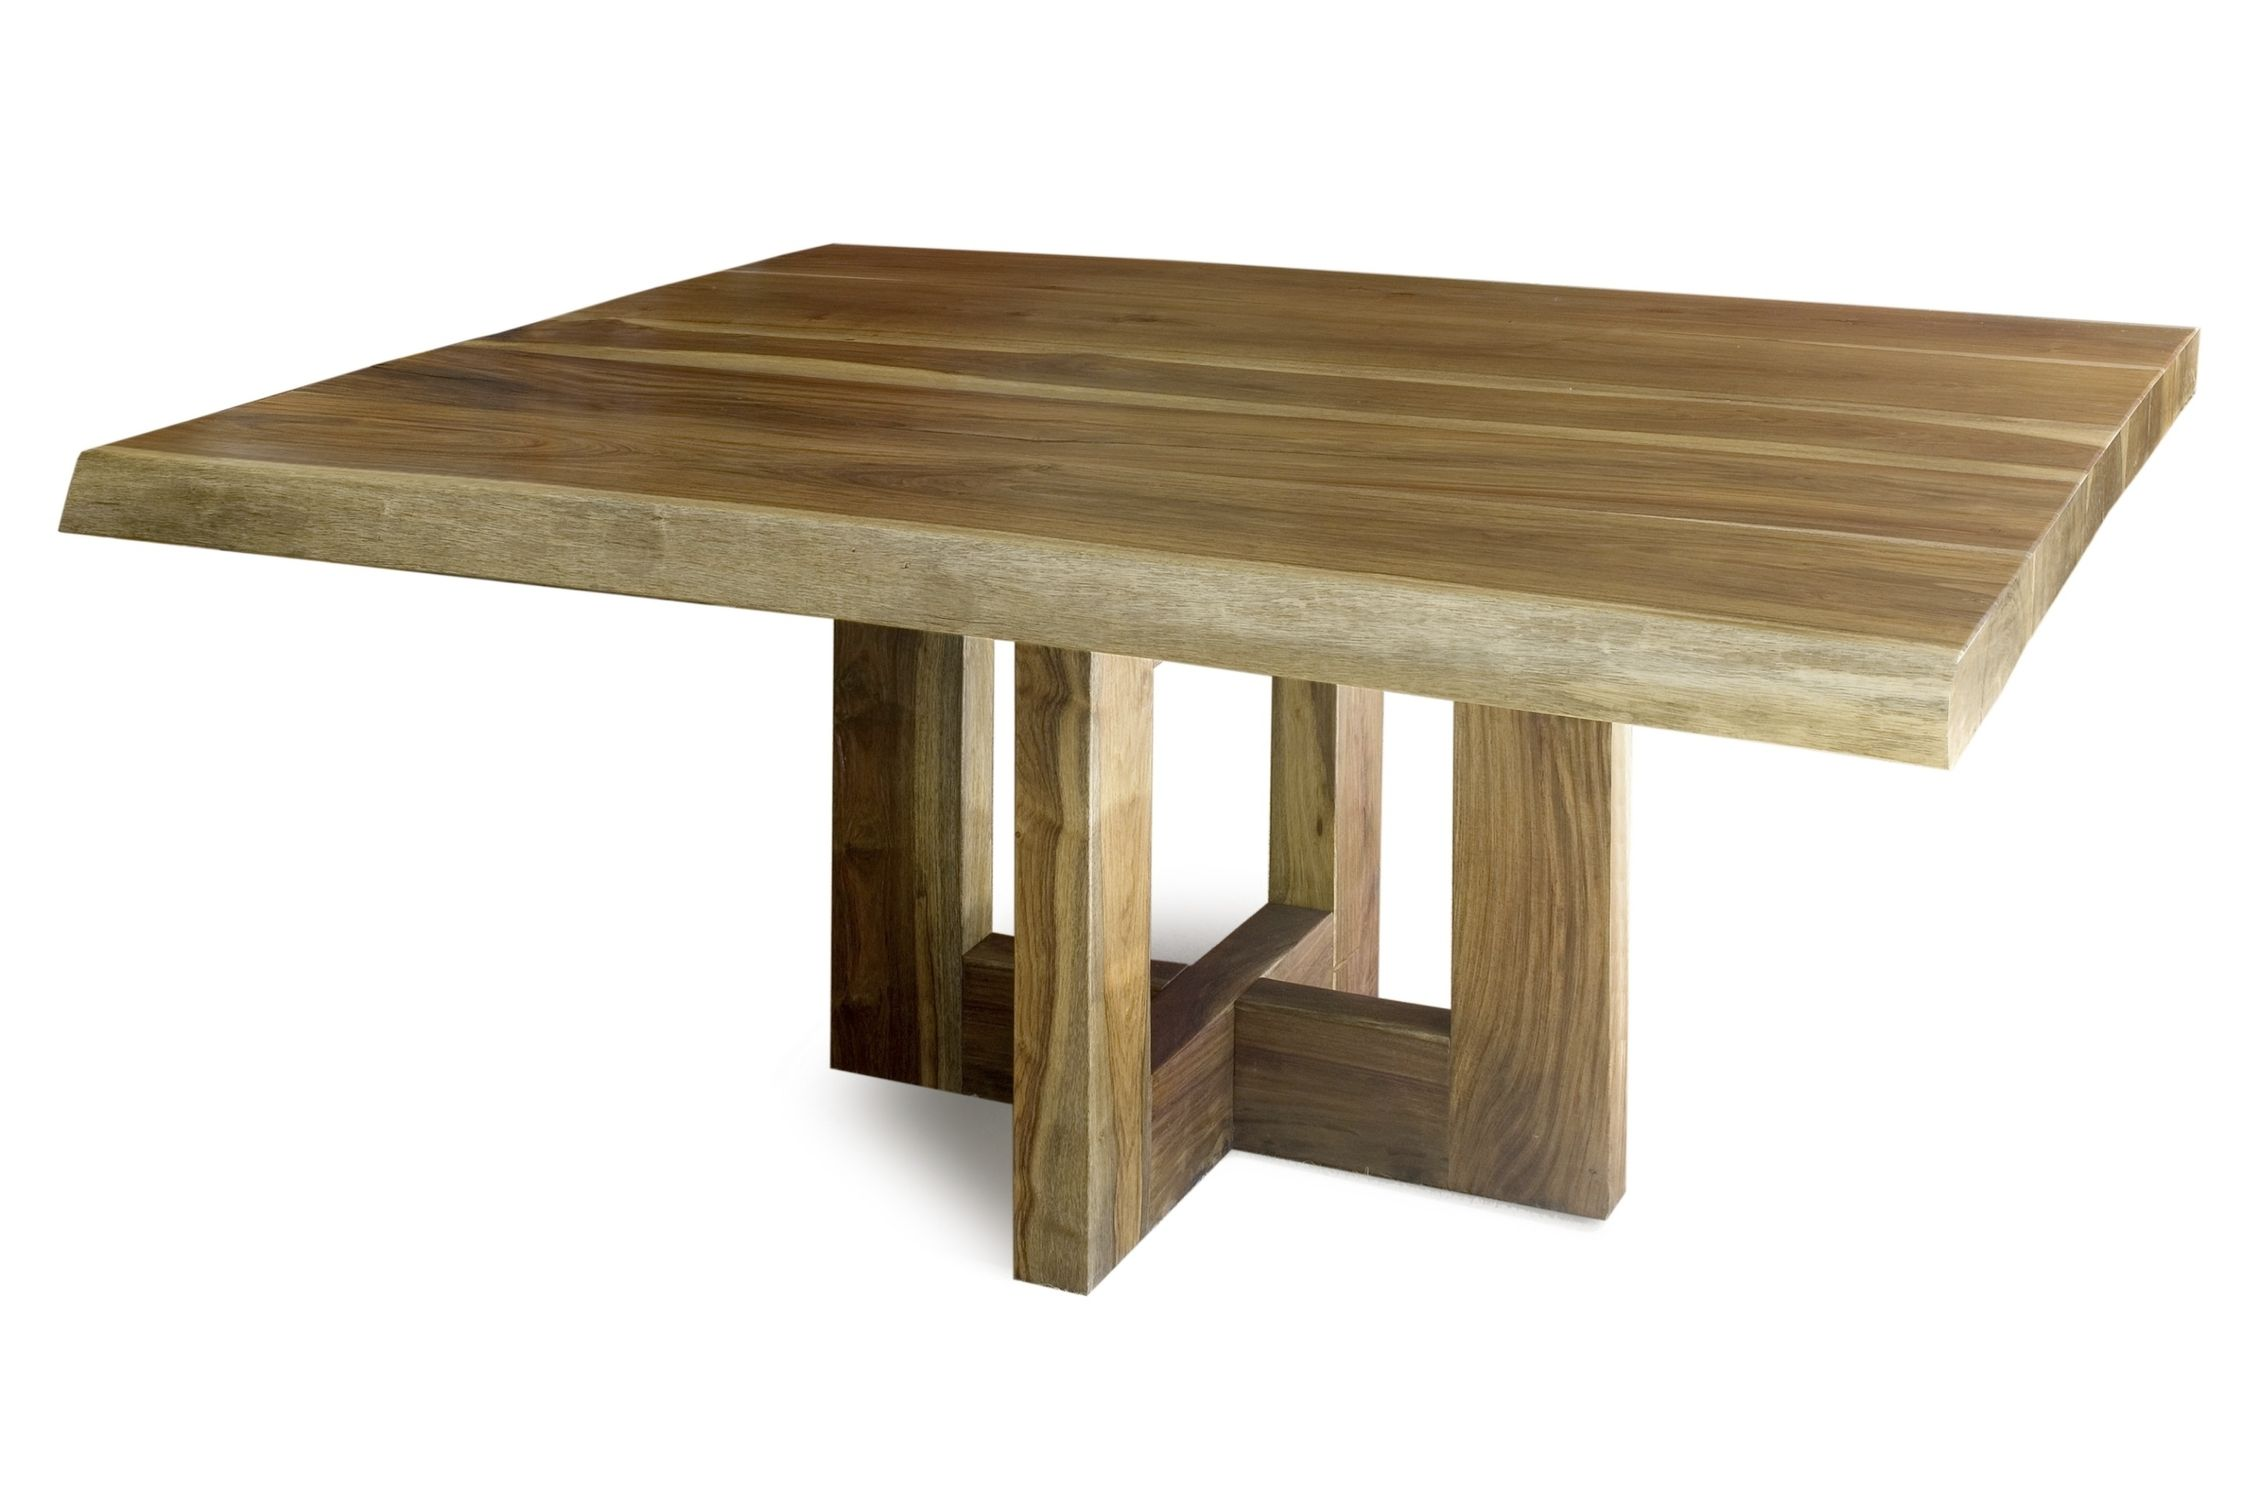 contemporary table wooden rectangular in reclaimed material jacaranda - Square Wood Dining Table